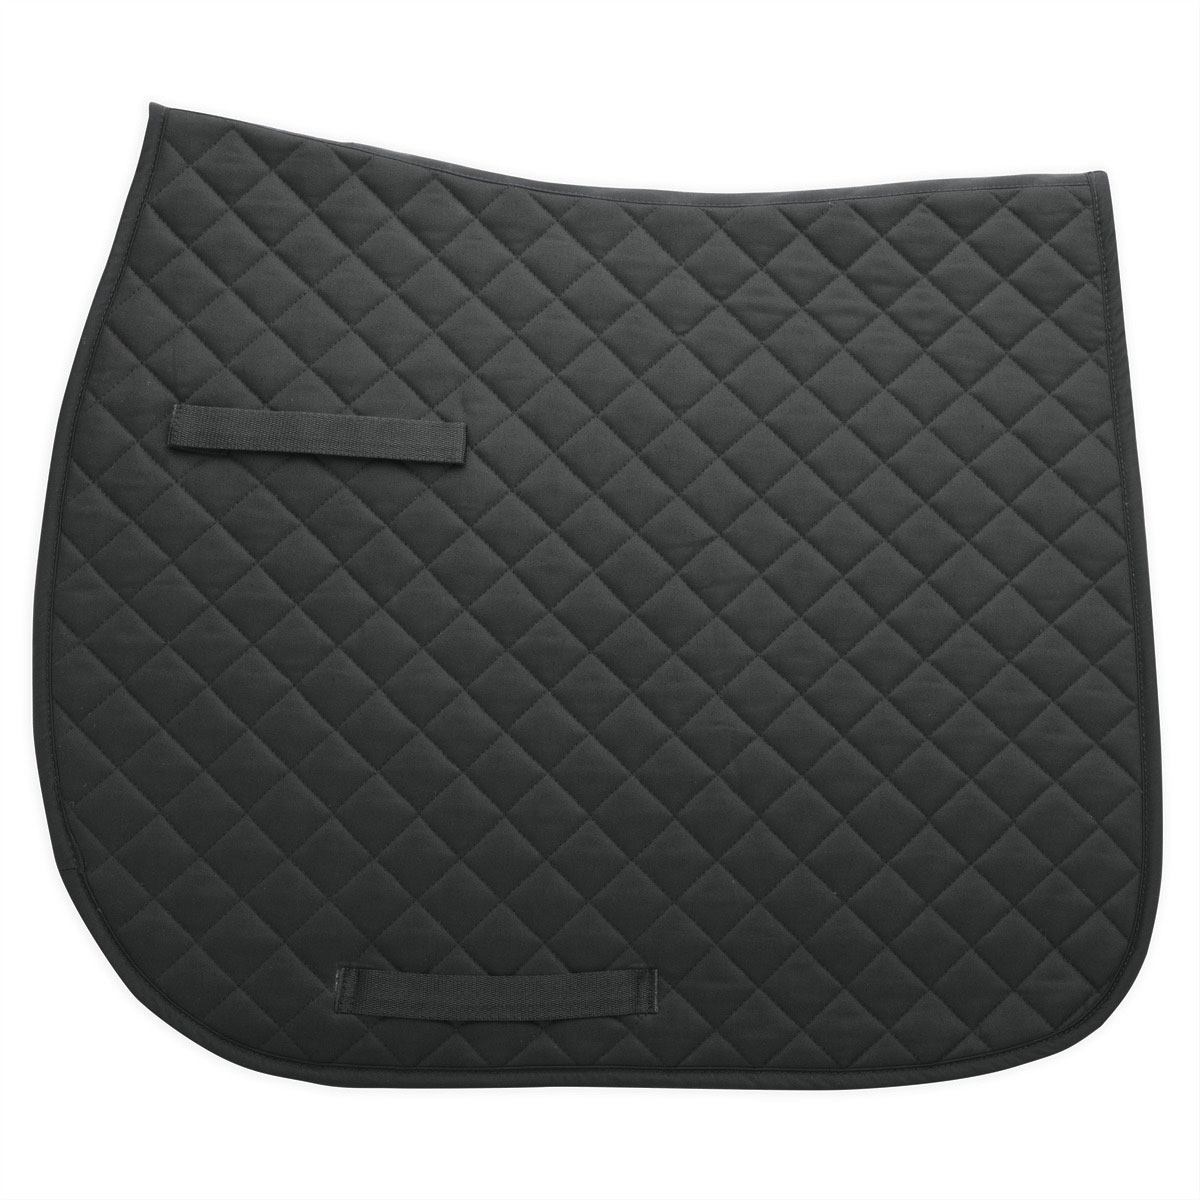 SmartPak Medium Diamond Dressage Saddle Pad